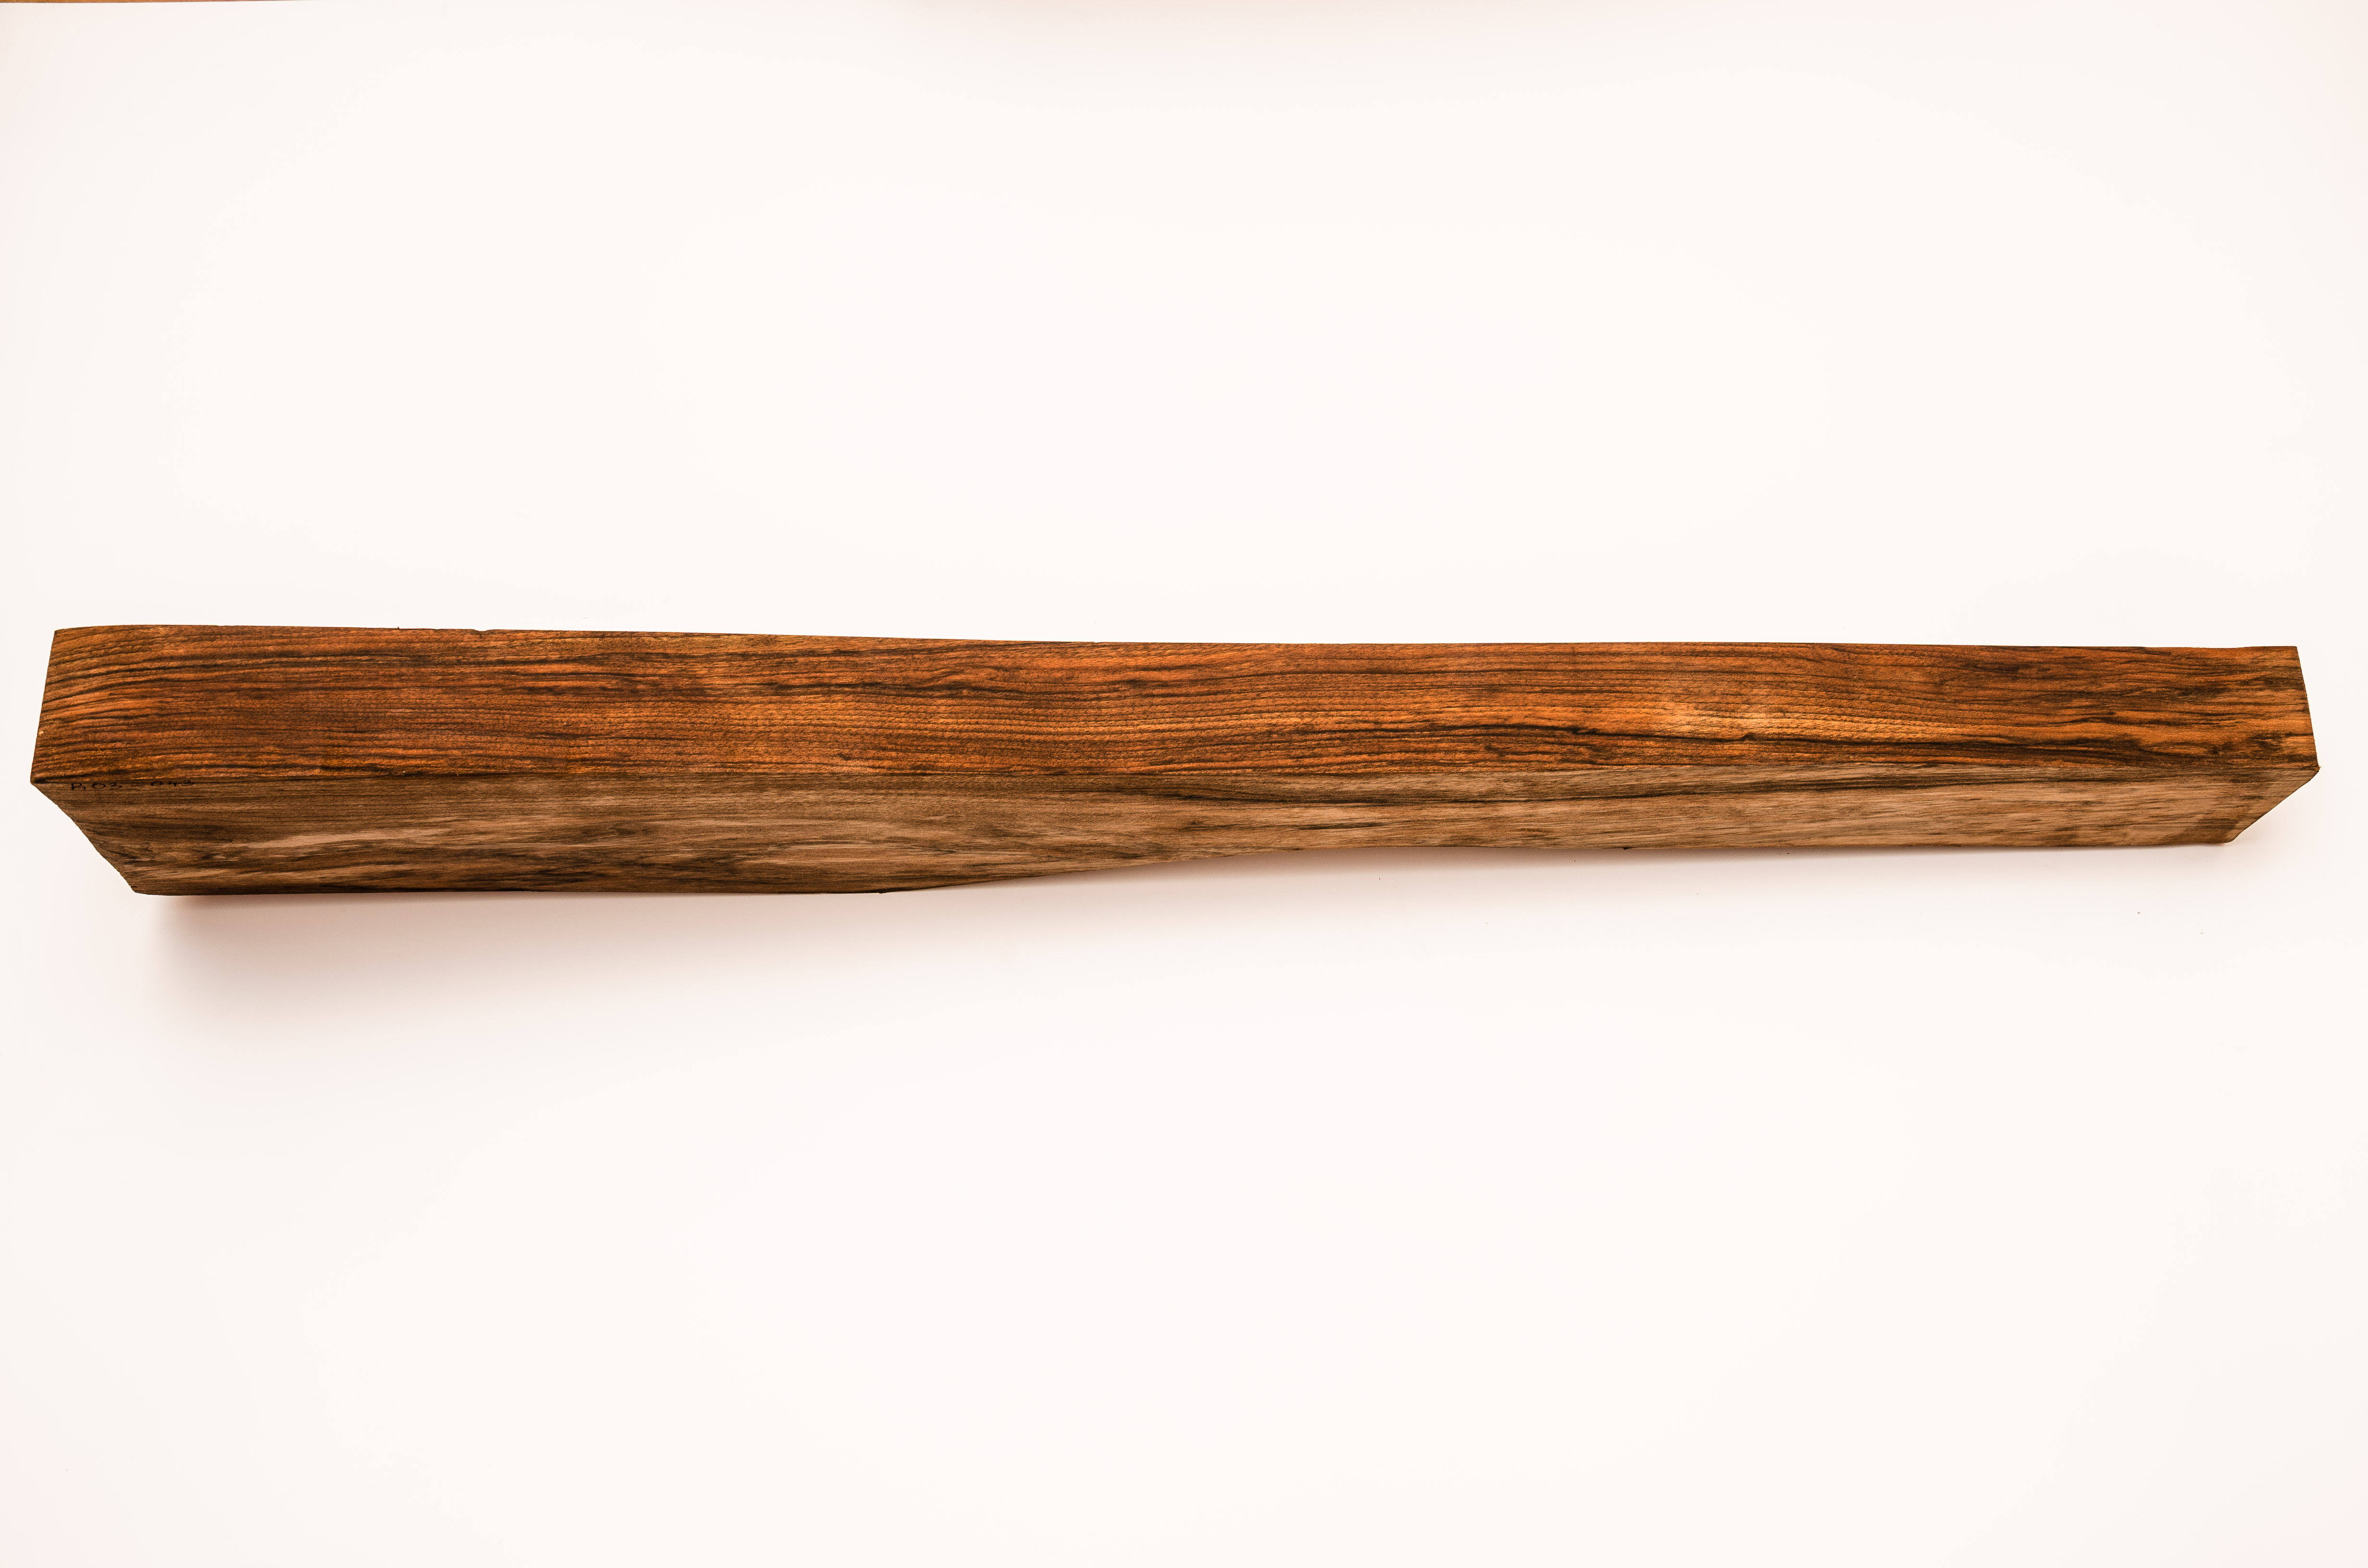 walnut_stock_blanks_for_guns_and_rifles-1277